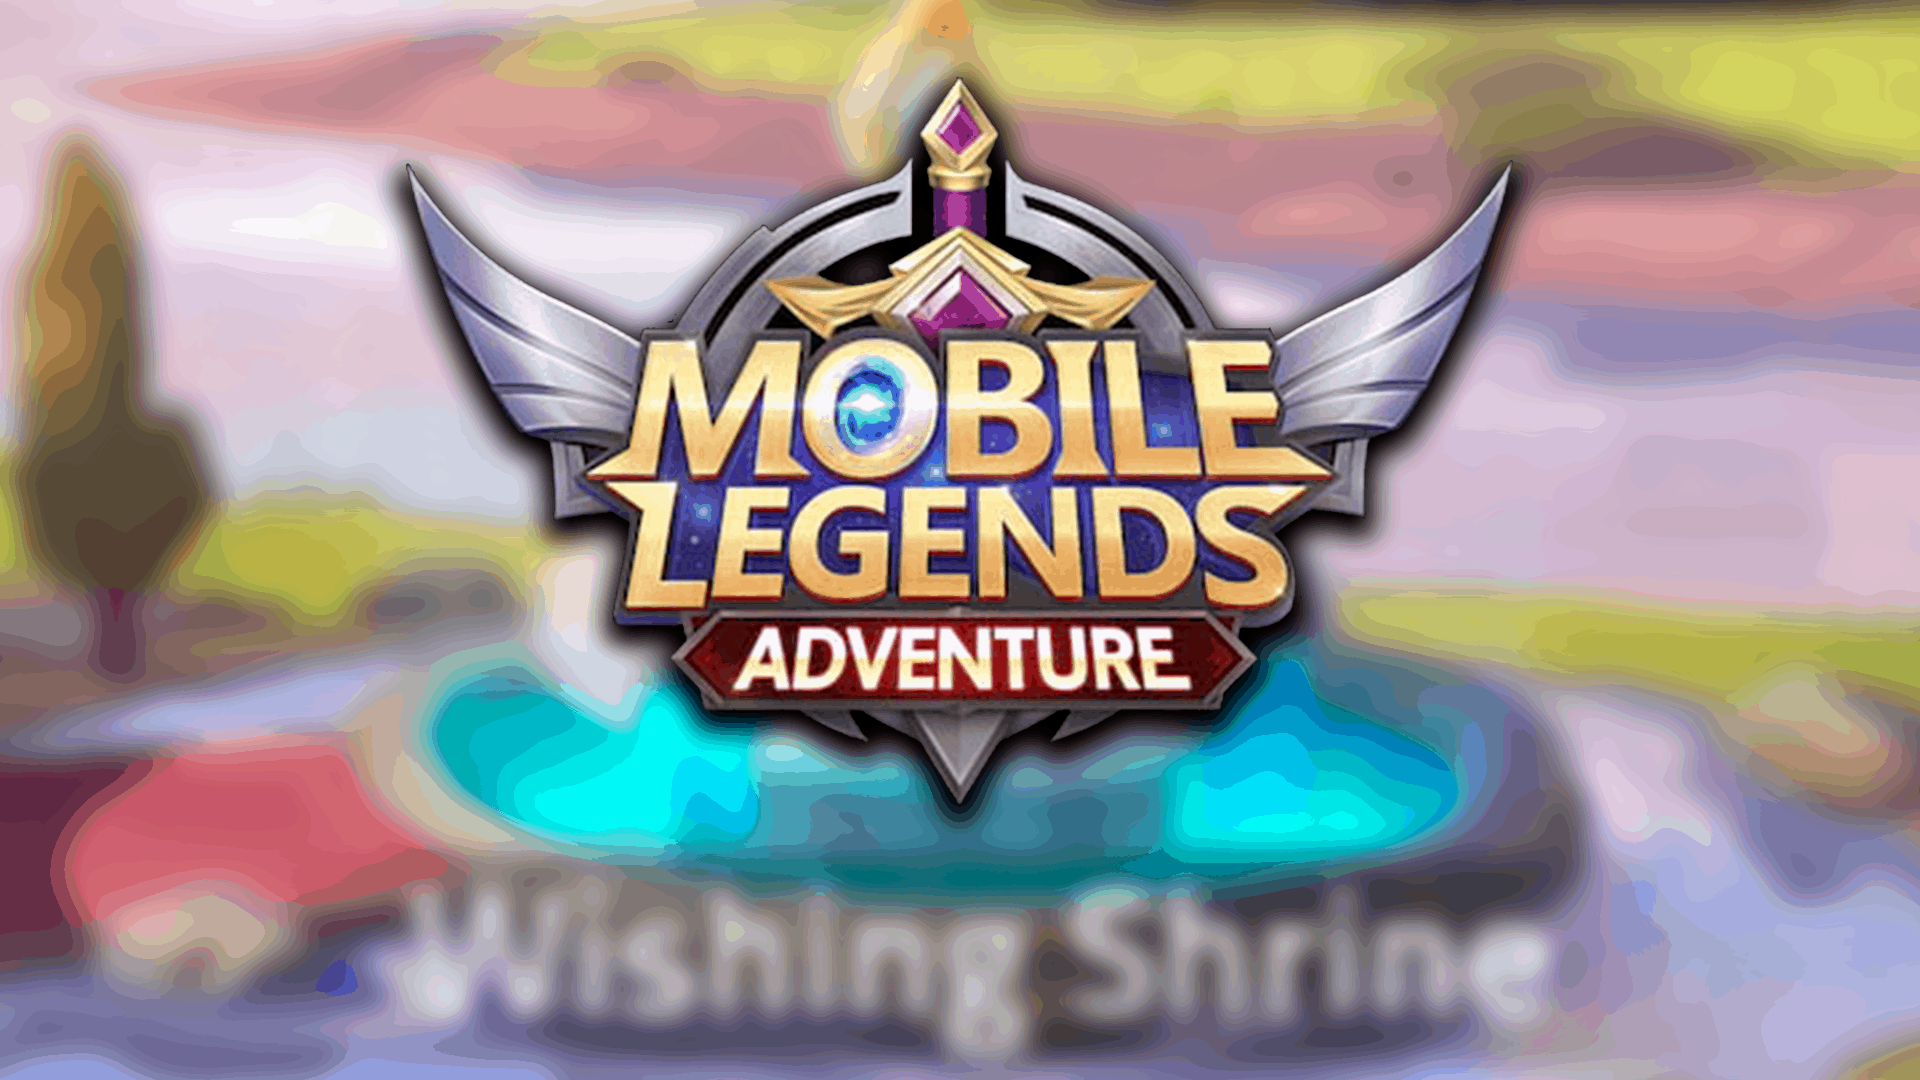 mobile legends: adventure - wishing shrine - gamer empire